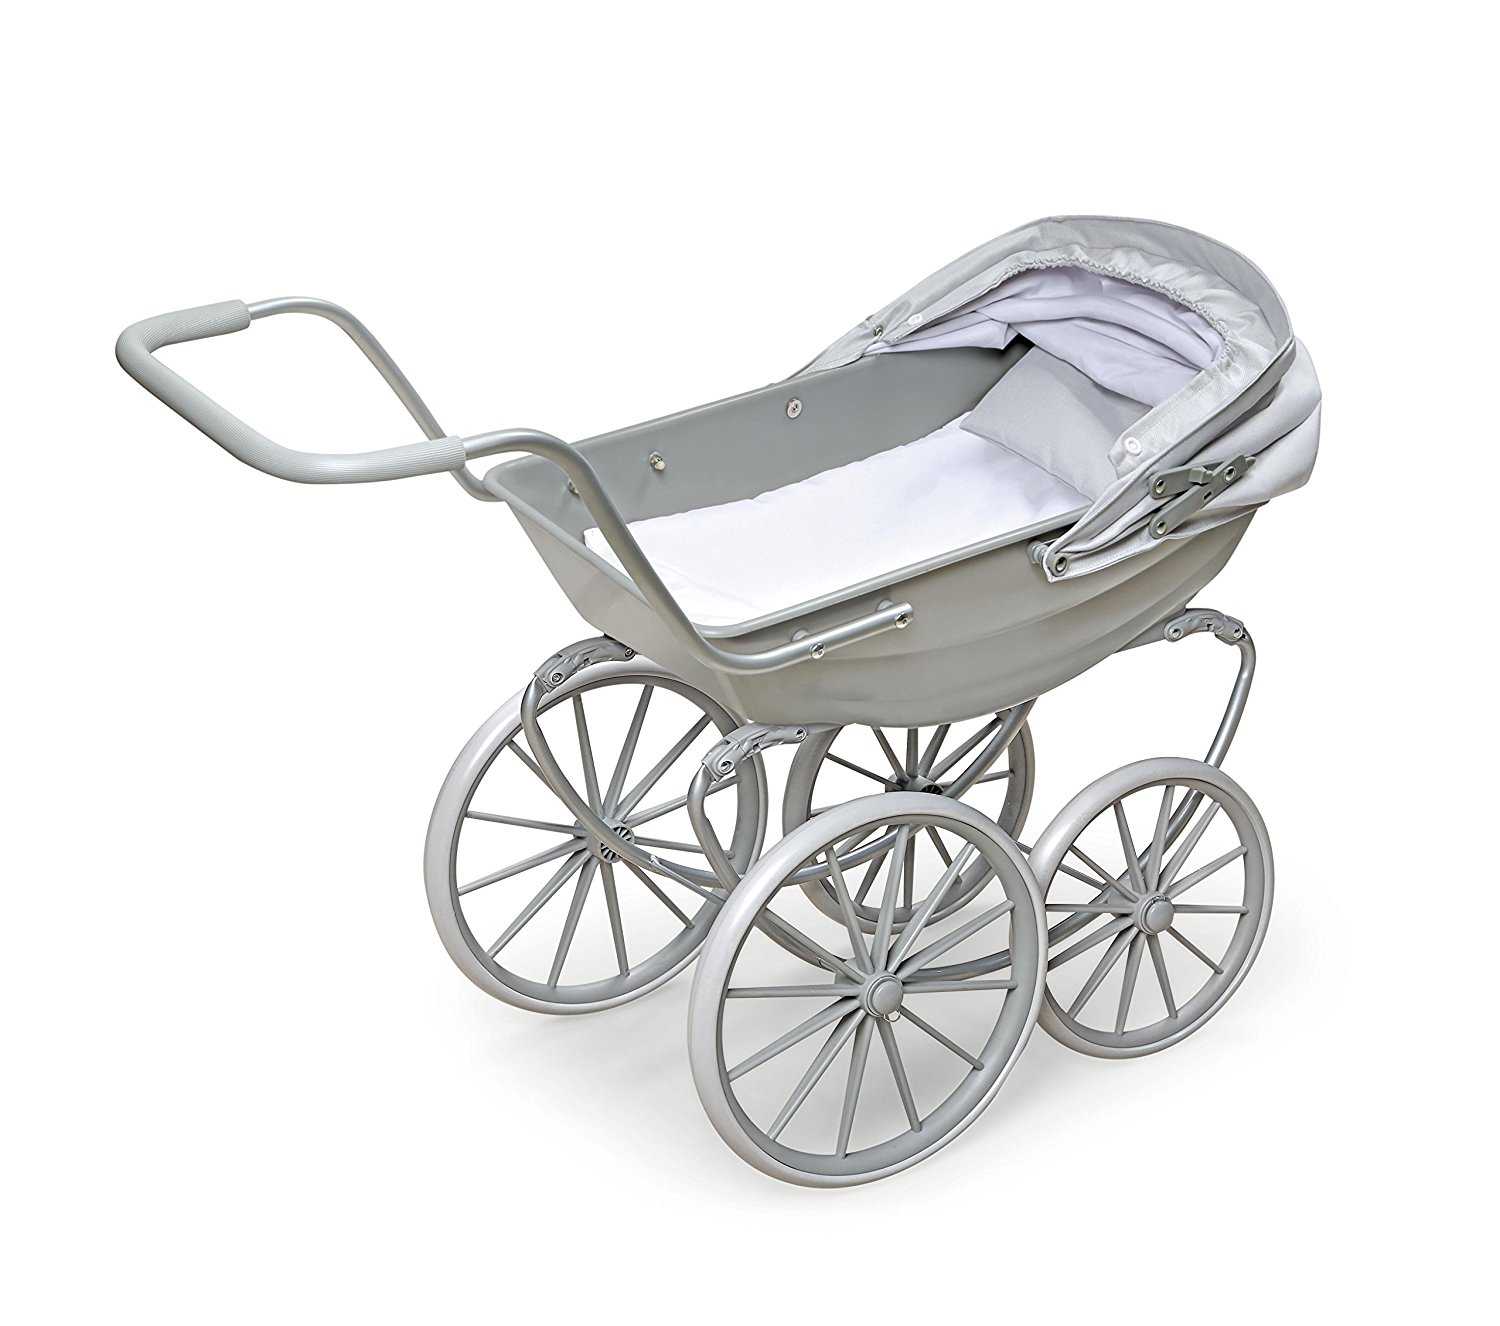 Badger Basket London Doll Pram ,fits American Girl dolls, Gray5